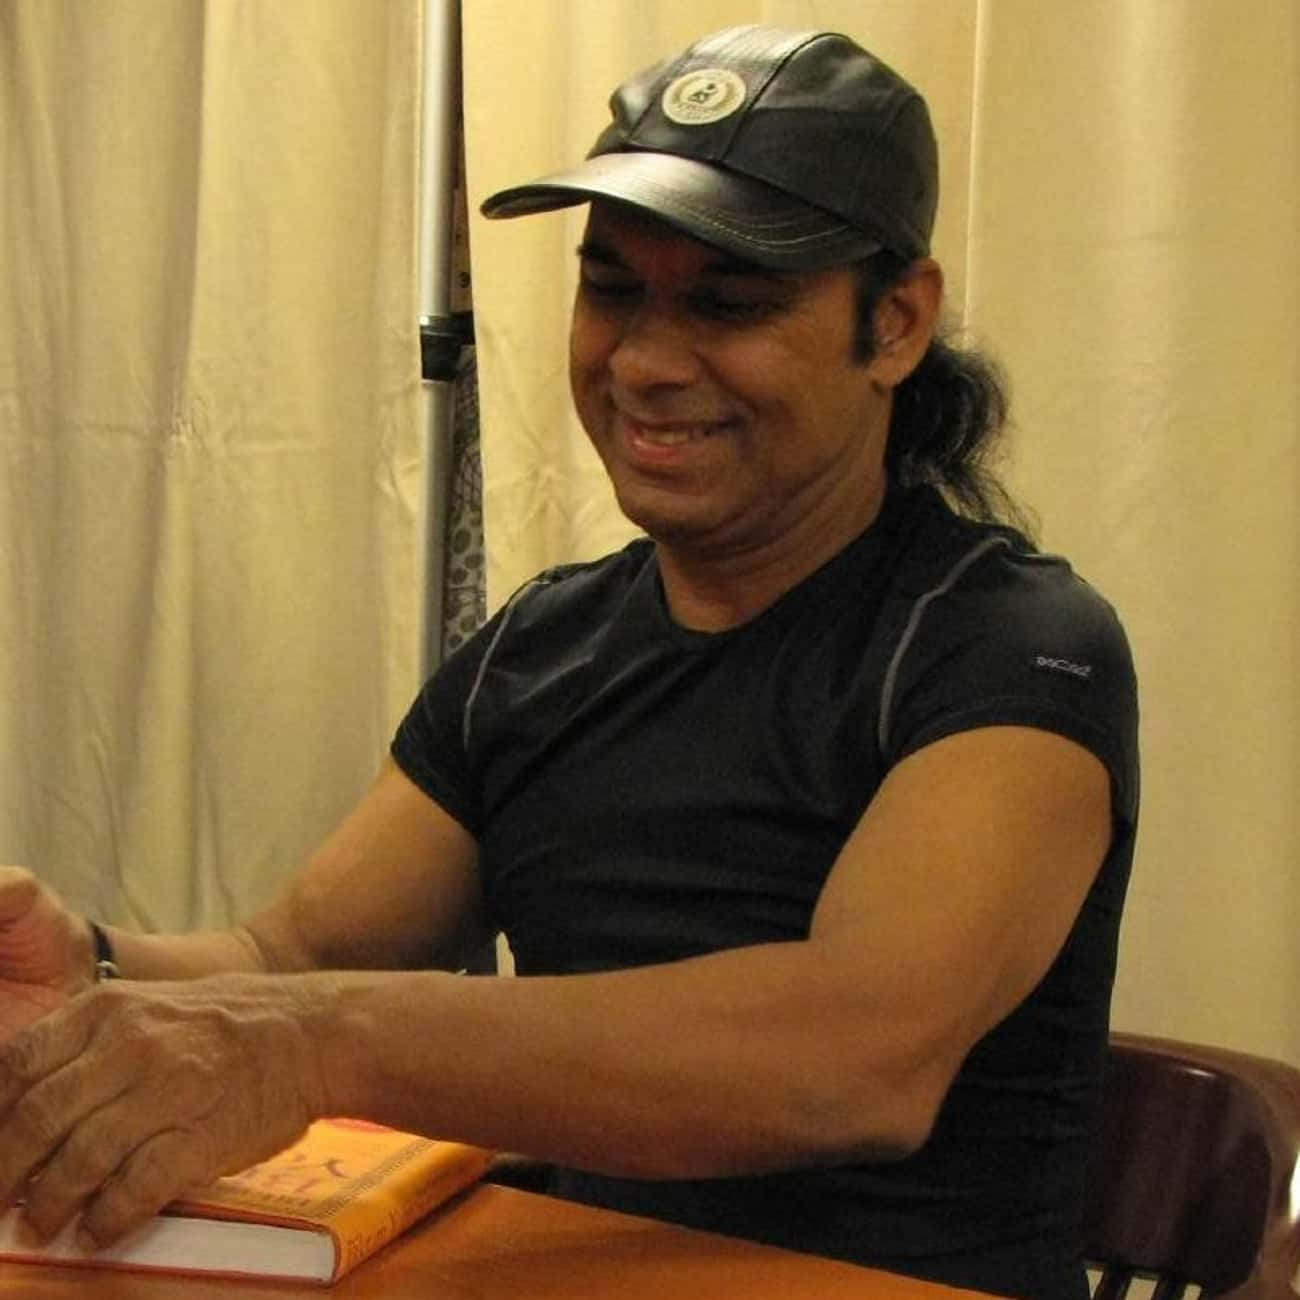 Bikram Choudhury is listed (or ranked) 3 on the list List of Famous Gurus